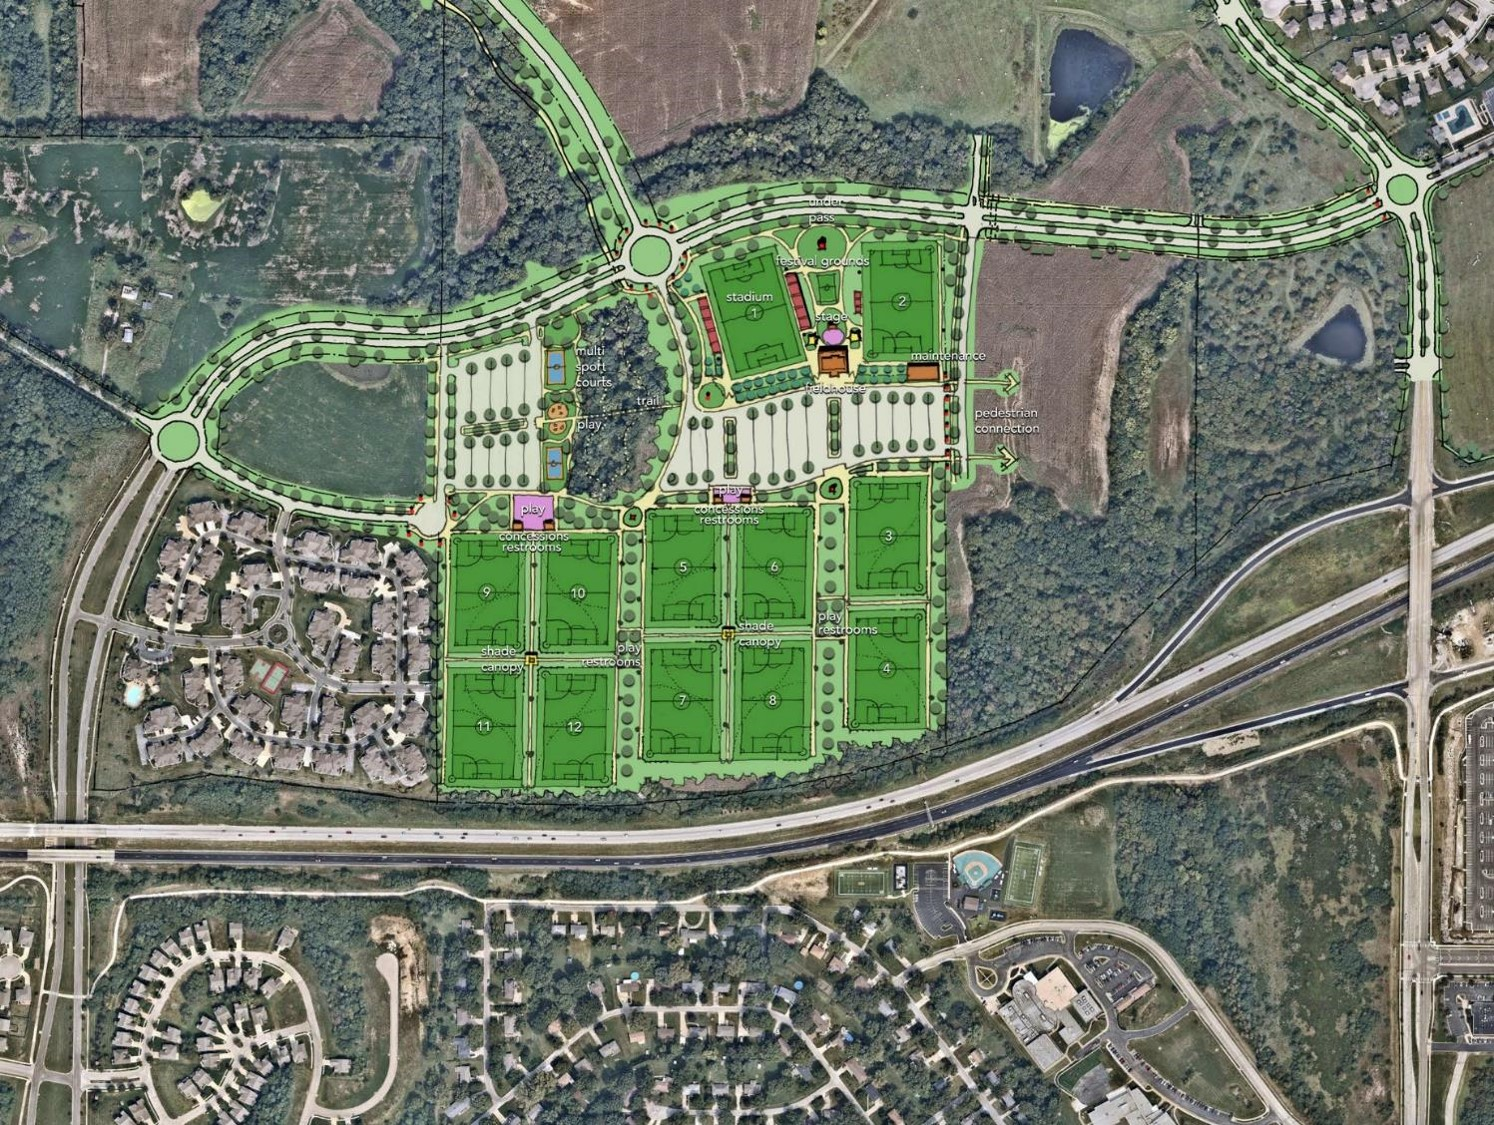 Contributed photo The above rendering shows what the new soccer complex located in Platte County will look like. The council is forging ahead with plans to construct the $42 million project at Highway 152 and N. Platte Purchase Road. In the far right hand corner is the area near Barry School.